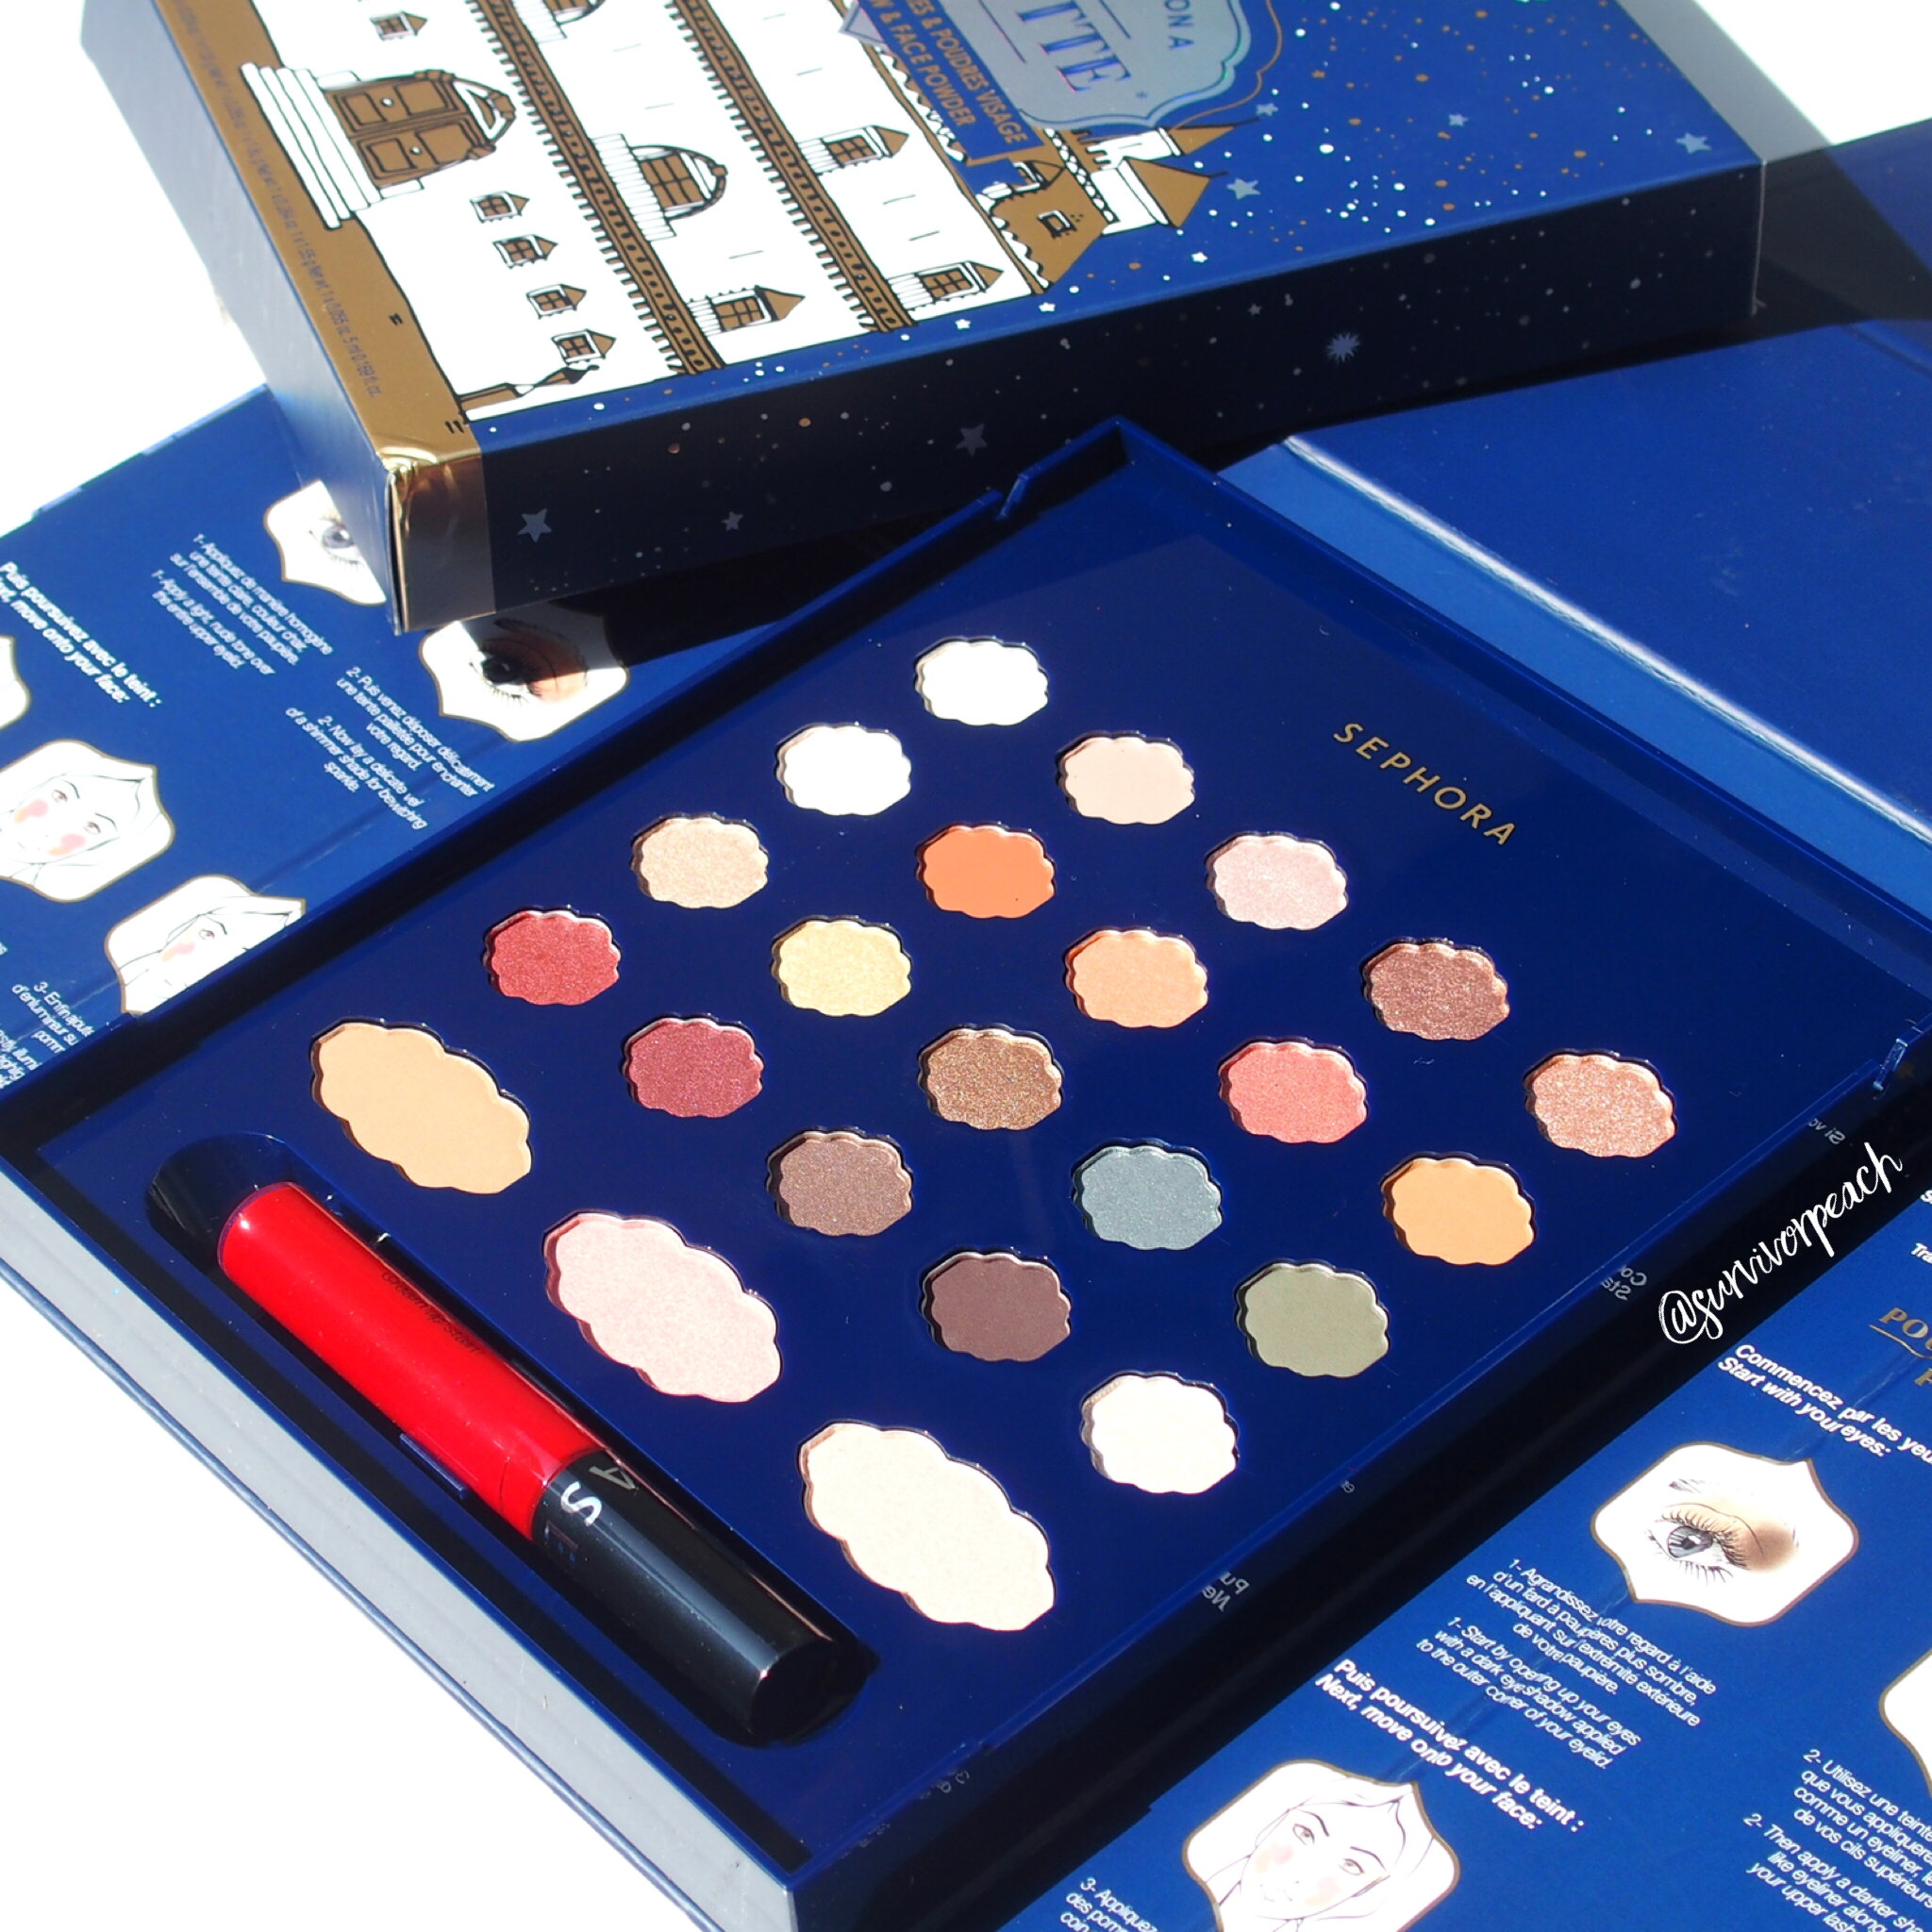 Sephora Collection Once Upon a Palette Eye Shadow & Face Powder palette.